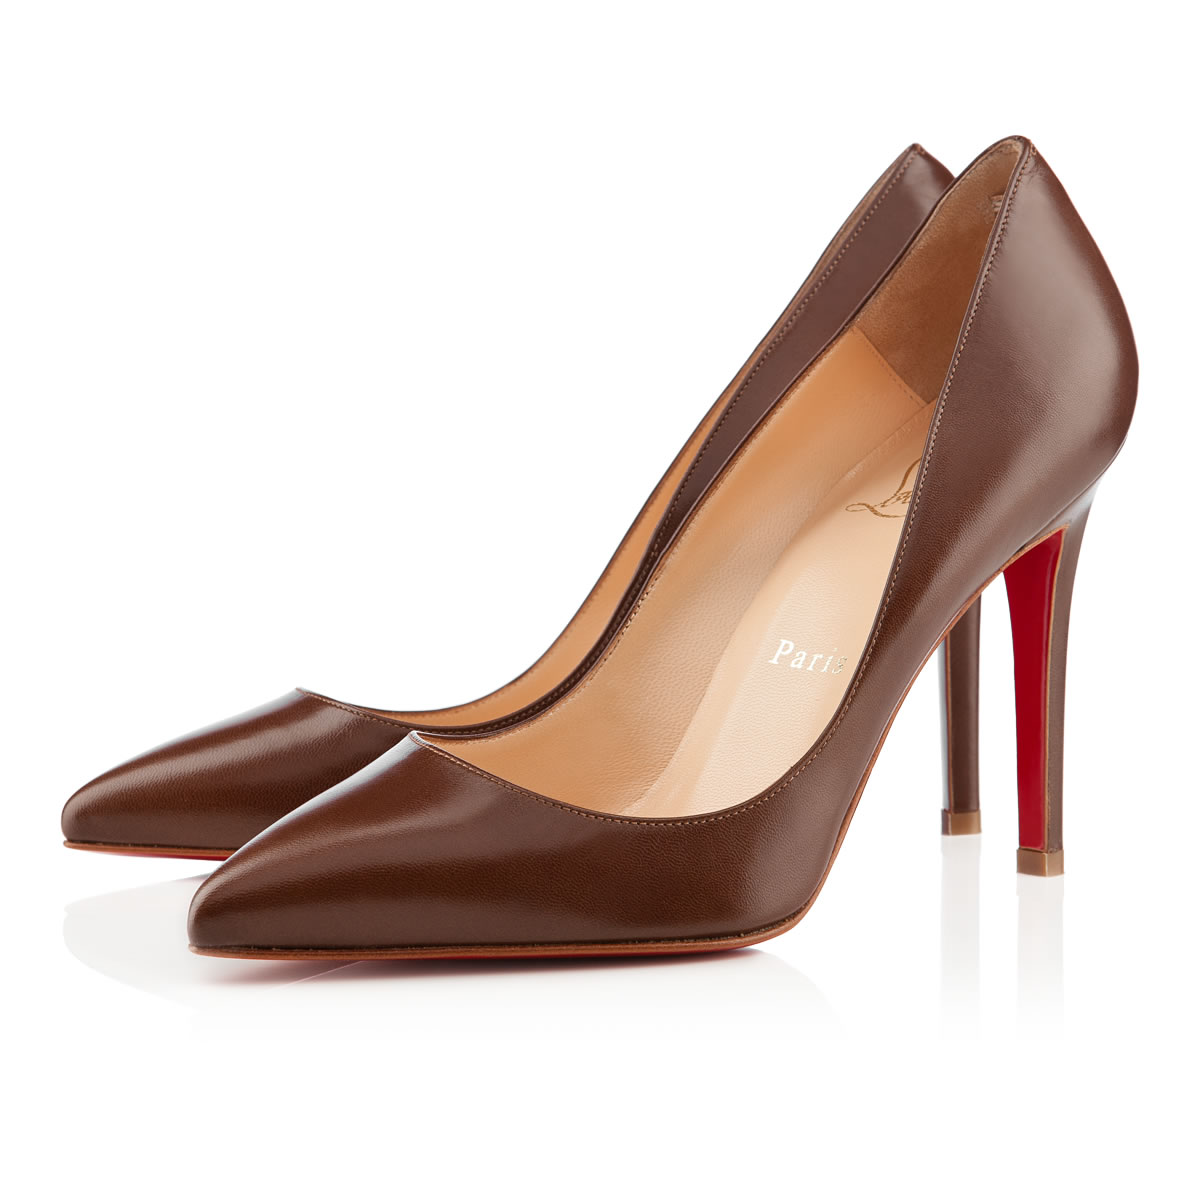 christianlouboutin-pigalle-3080519_3120_1_1200x1200.jpg